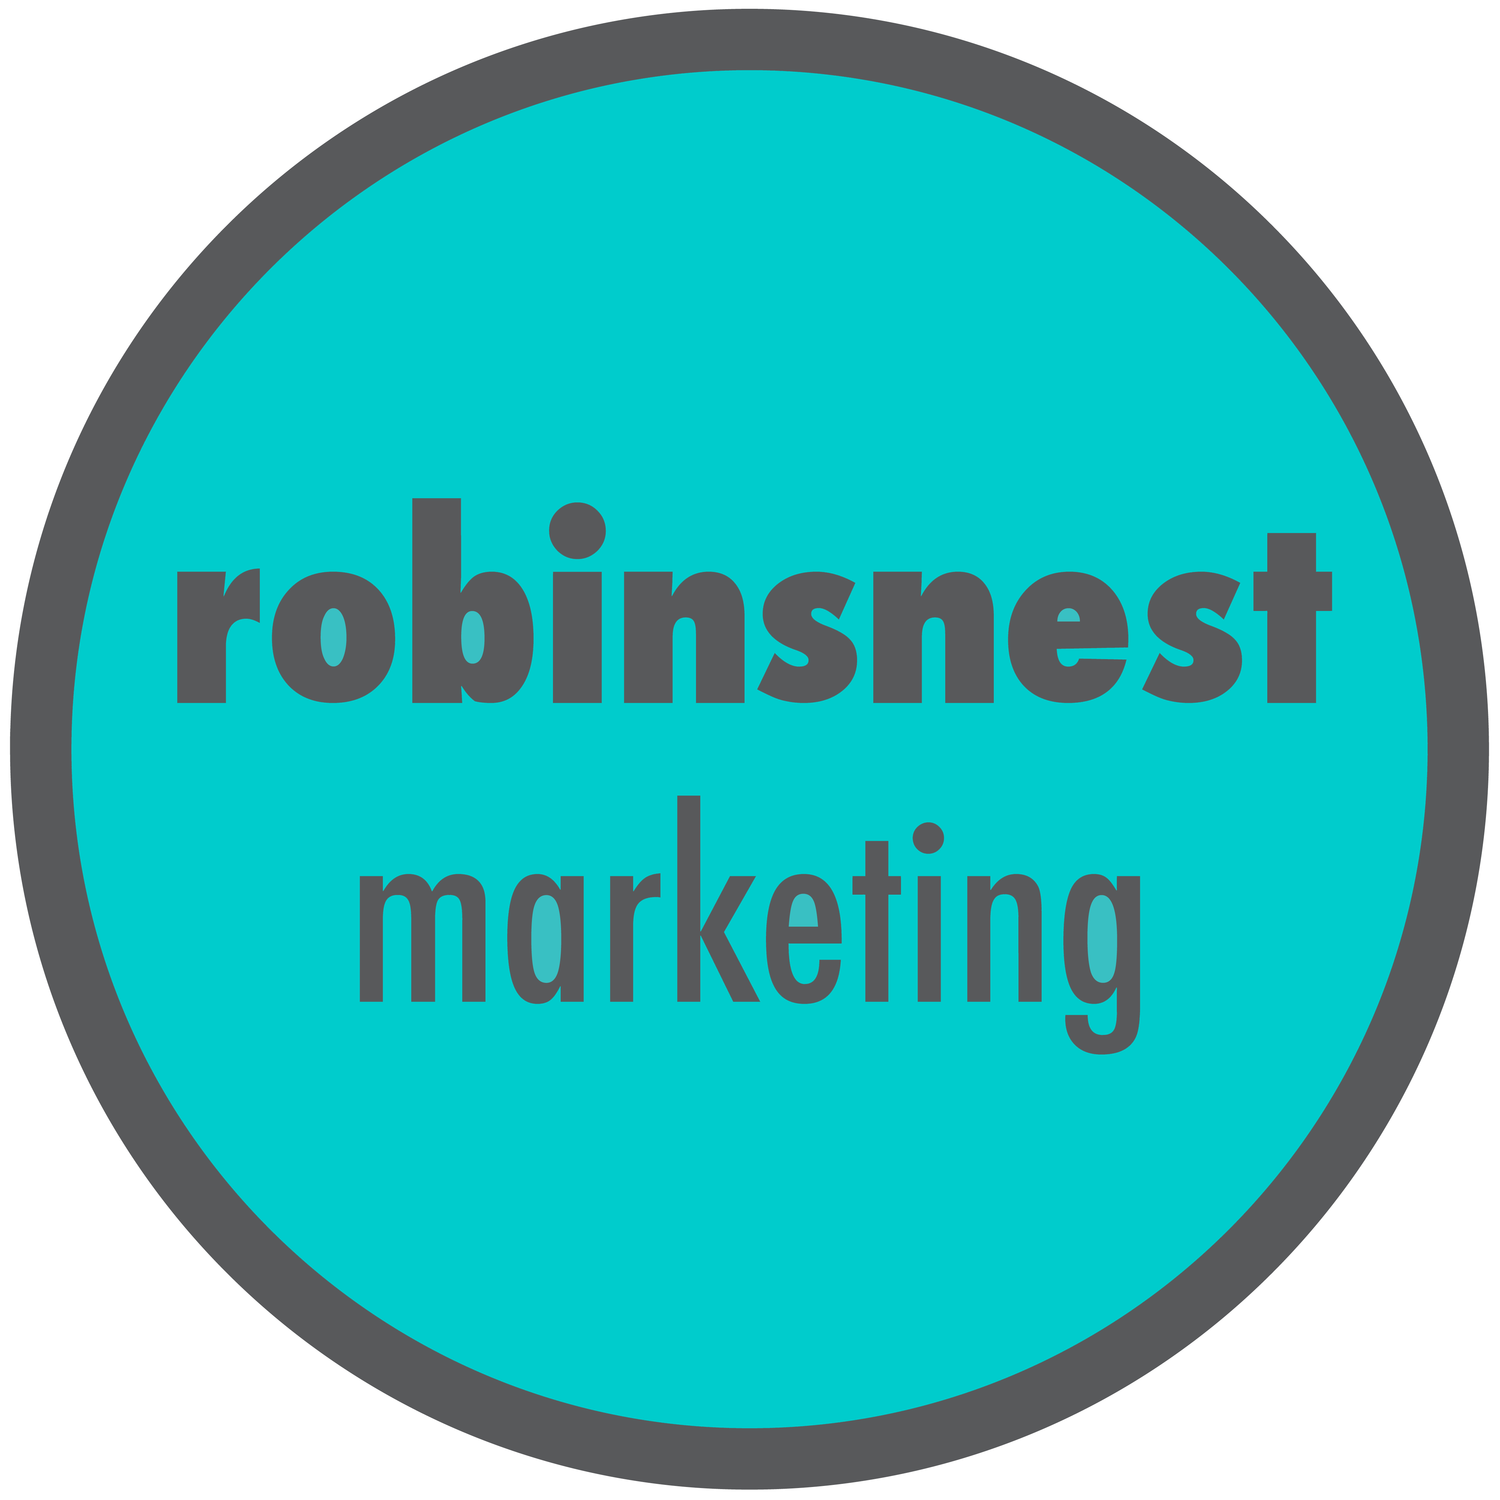 robinsnest marketing - austin marketing consultant